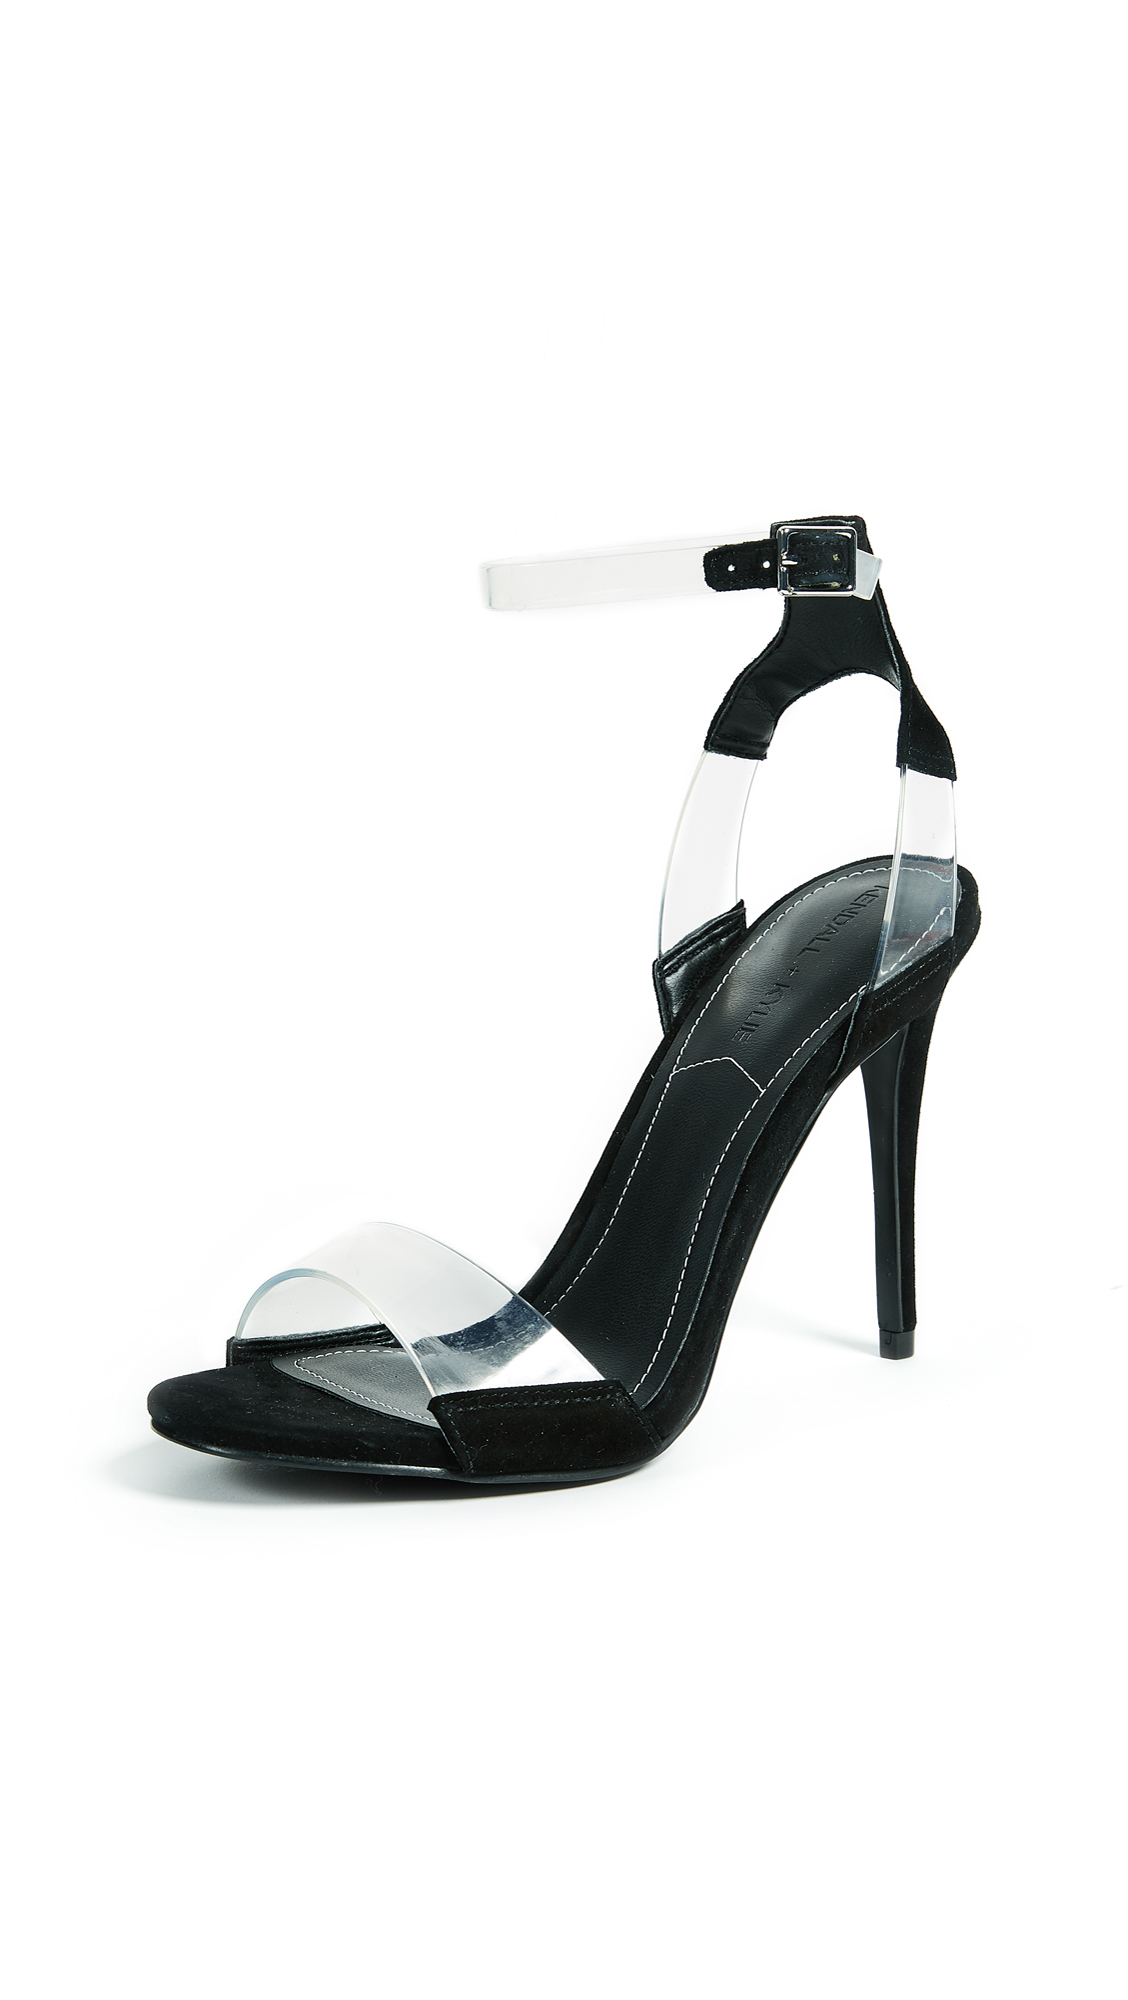 KENDALL + KYLIE Enya Ankle Strap Sandals - Clear/Black